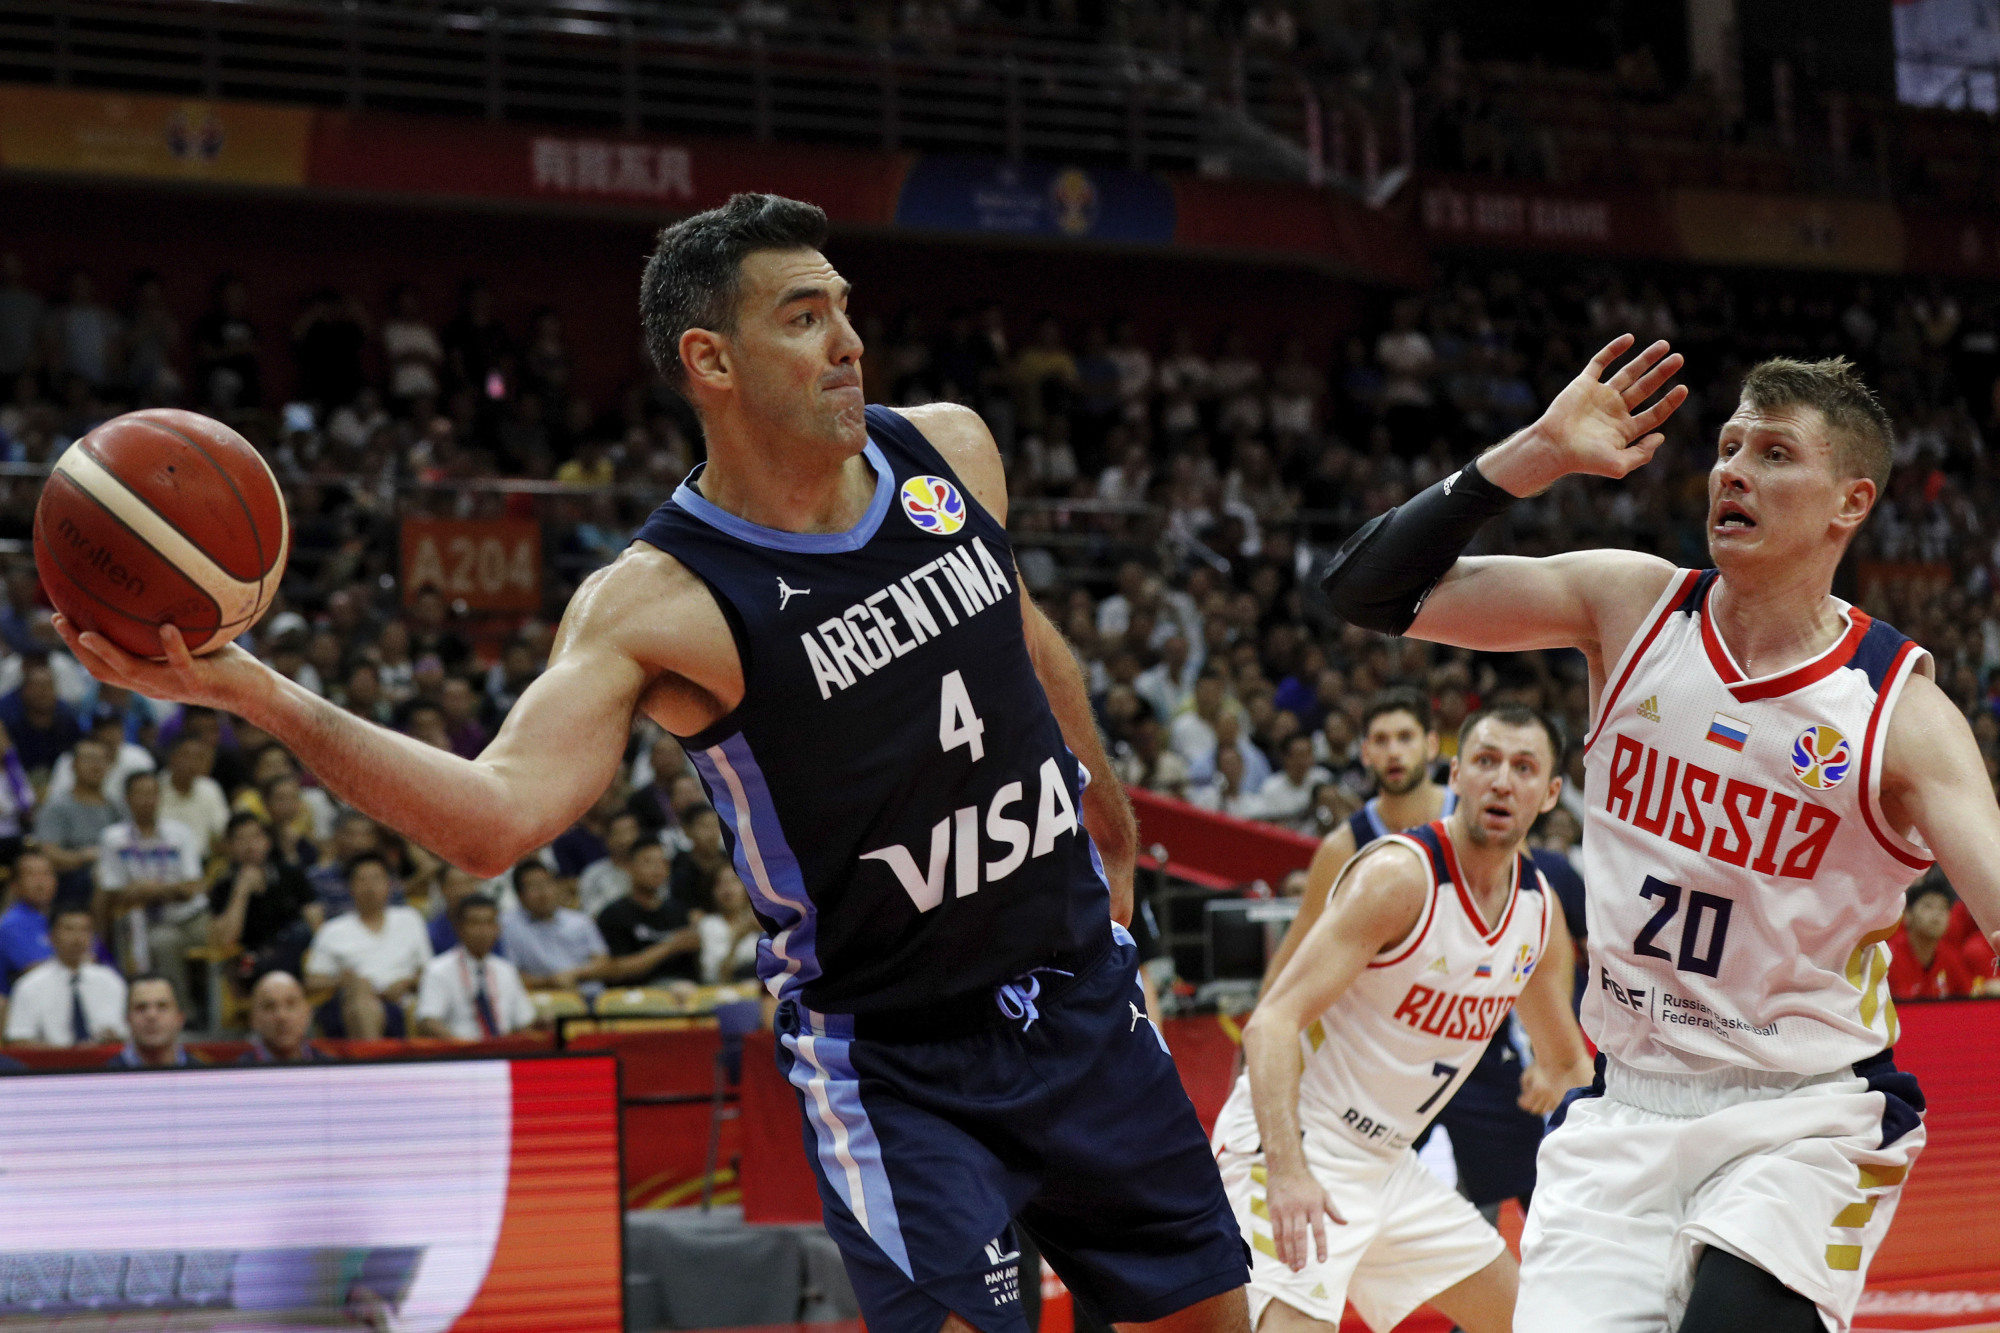 Argentina's Luis Scola looks to pass under pressure from Russia's Andrey Vorontsevich in their Group B at the FIBA World Cup in Wuhan, China, on Wednesday. | AP